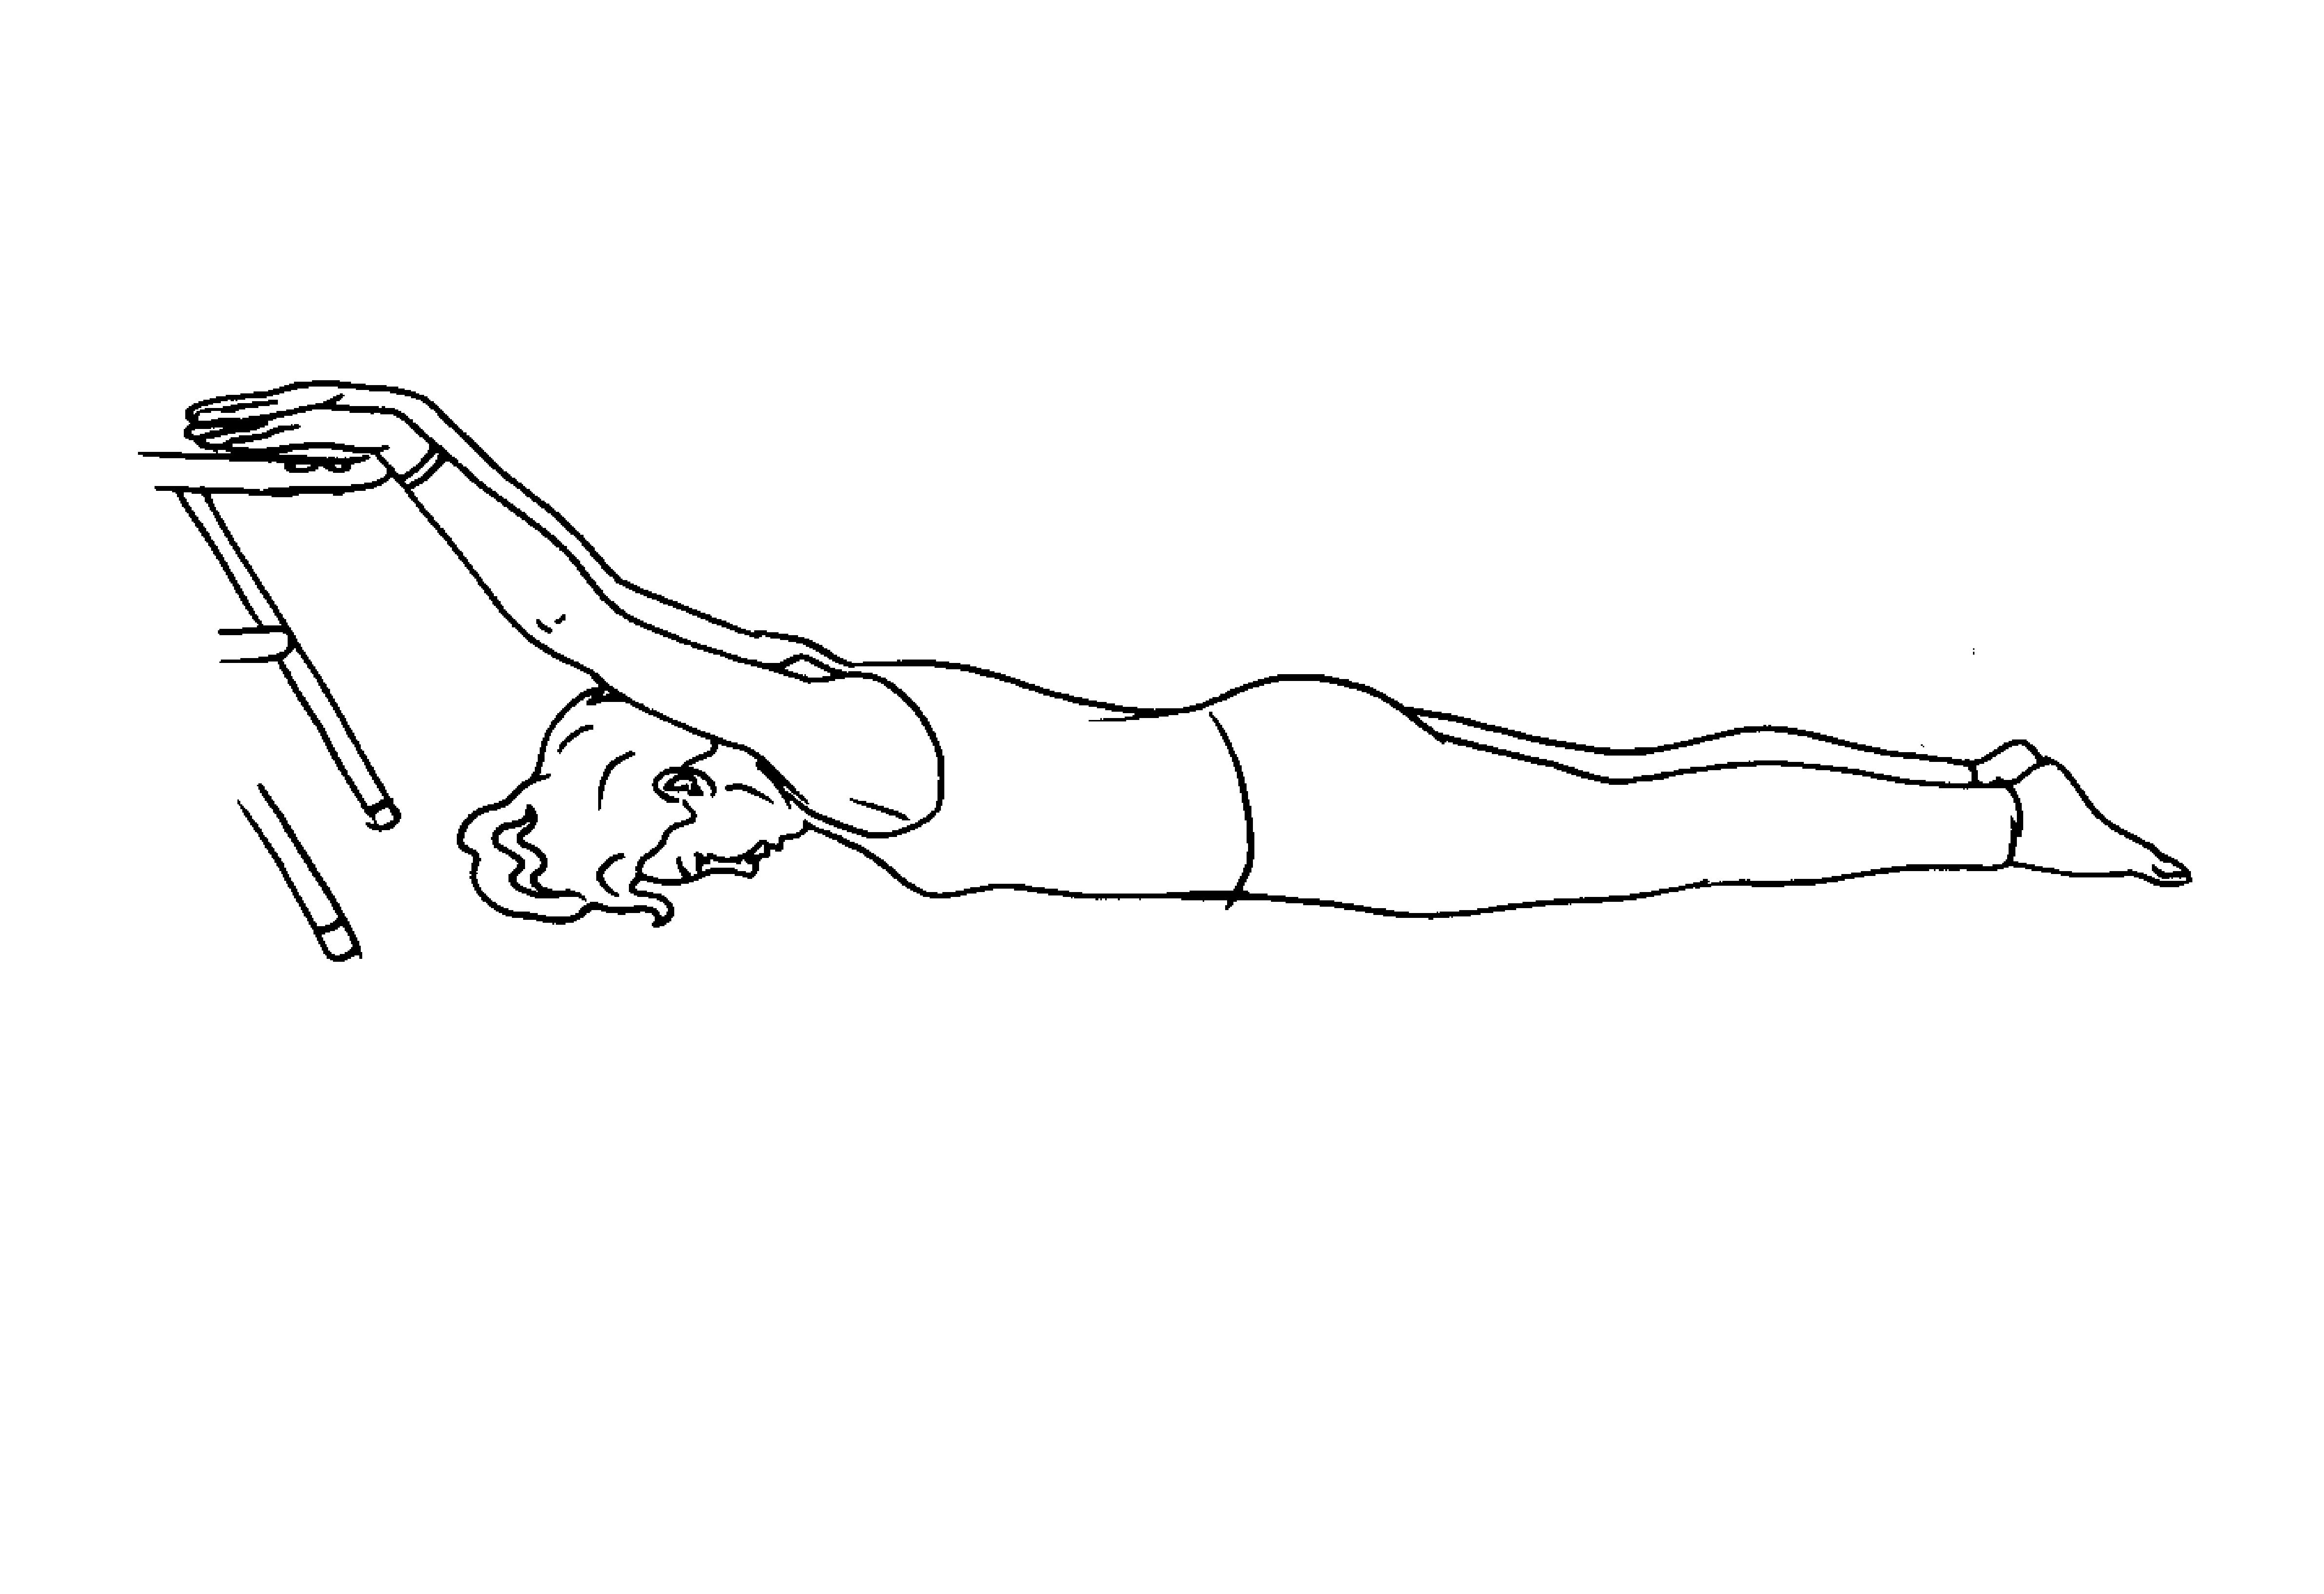 Exercises For Posture For The Upper Back